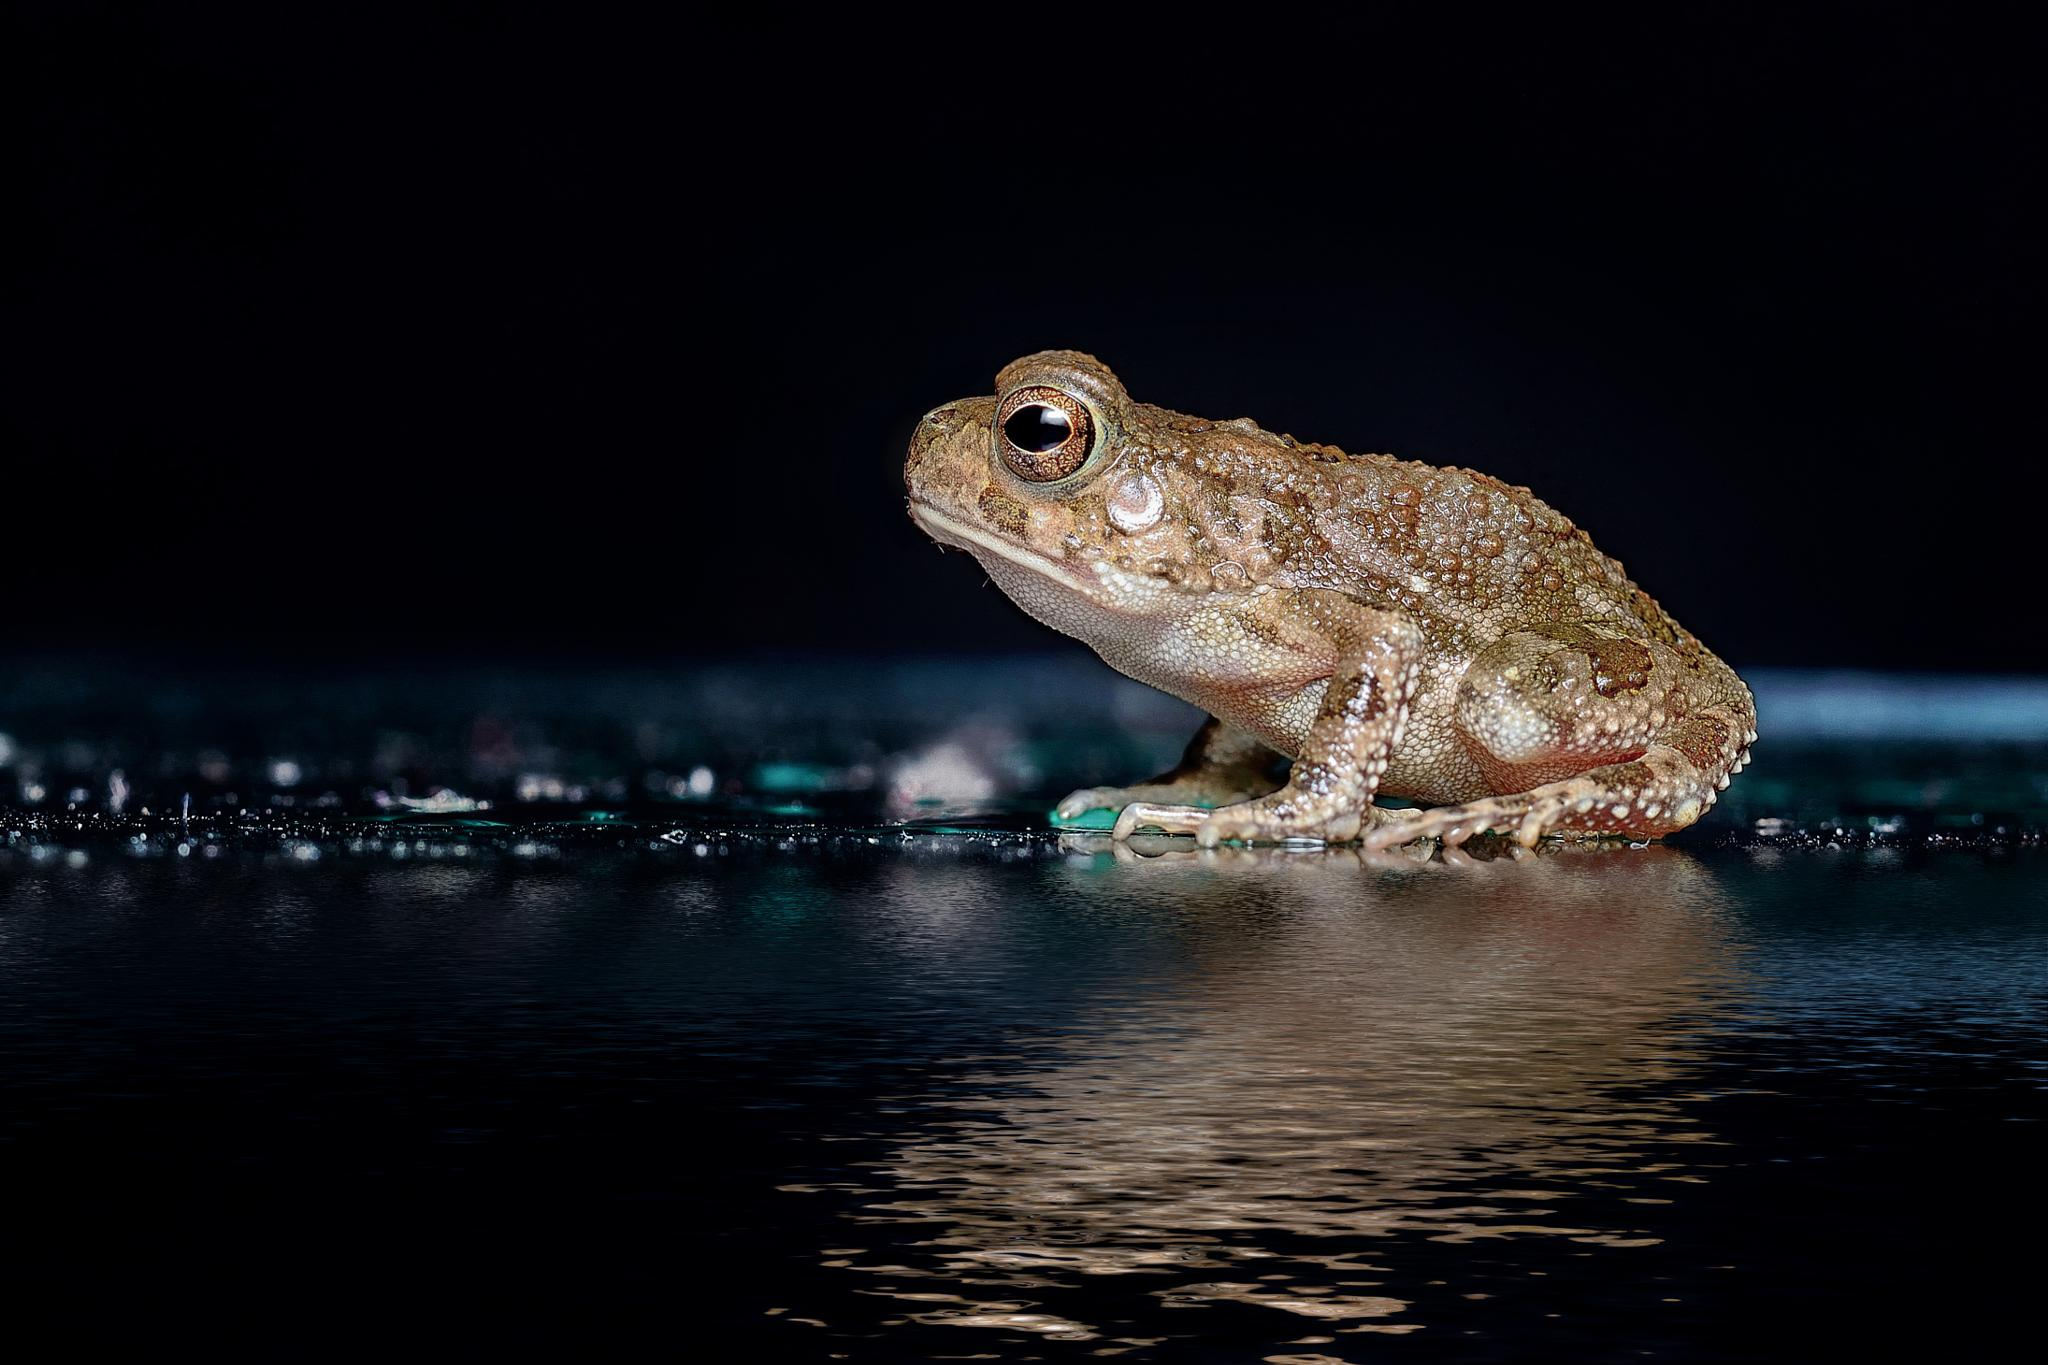 African frog by Mohamed Mahdy